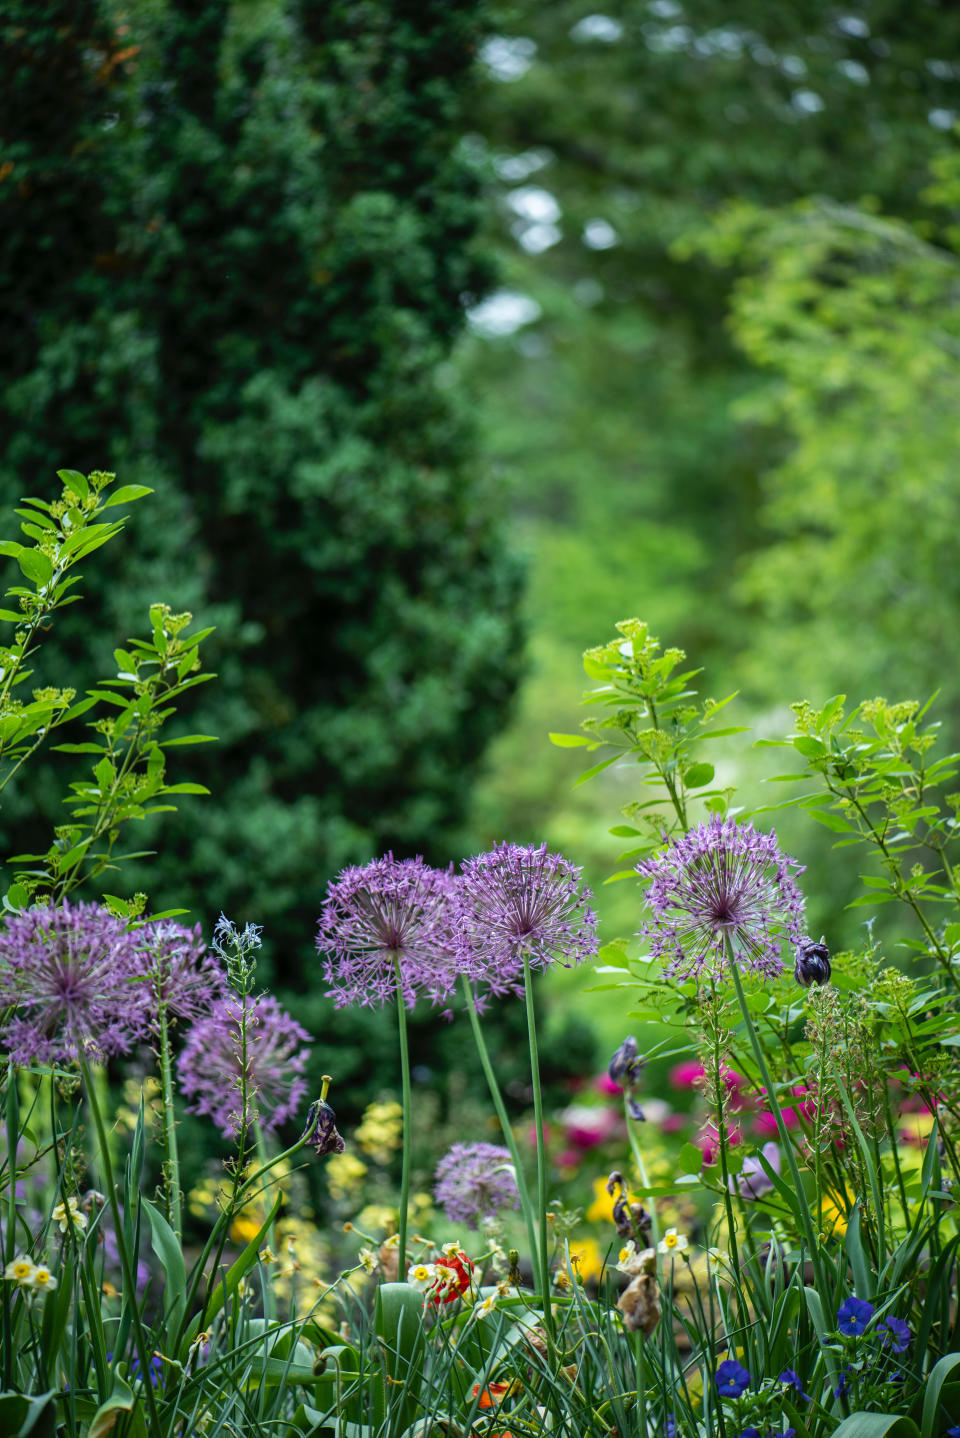 How much does landscaping cost?: planting